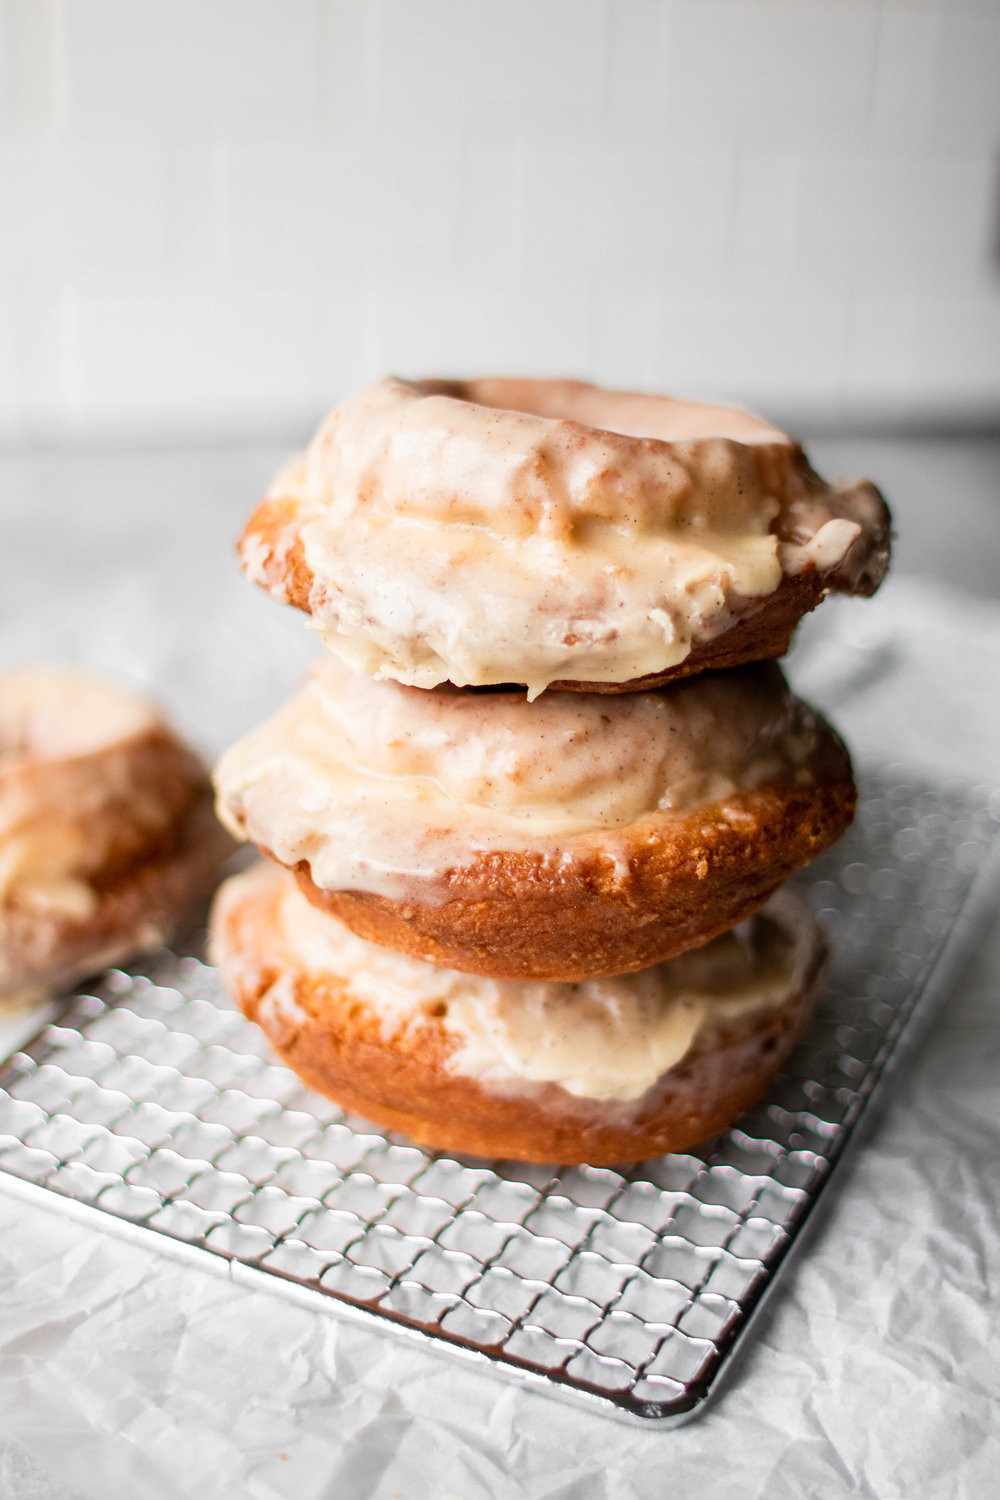 old fashioned donut3.jpg